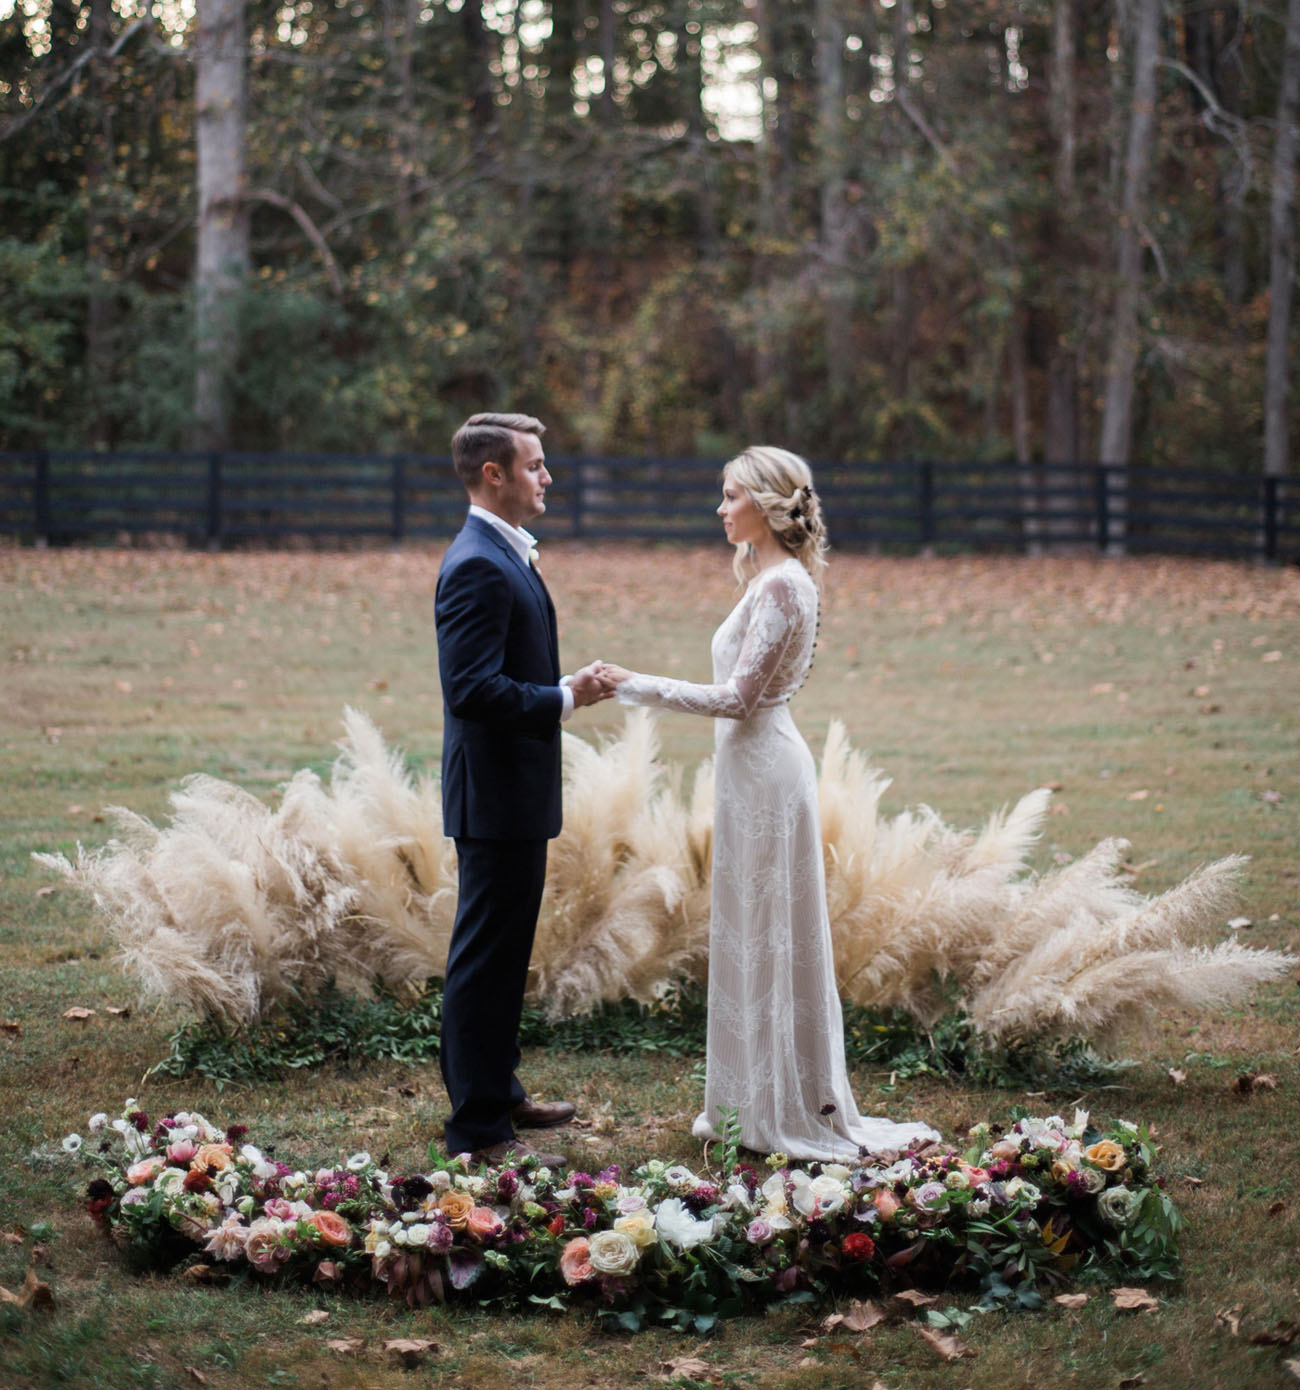 Cozy Wedding in the Woods Inspiration from the Vero Workshop